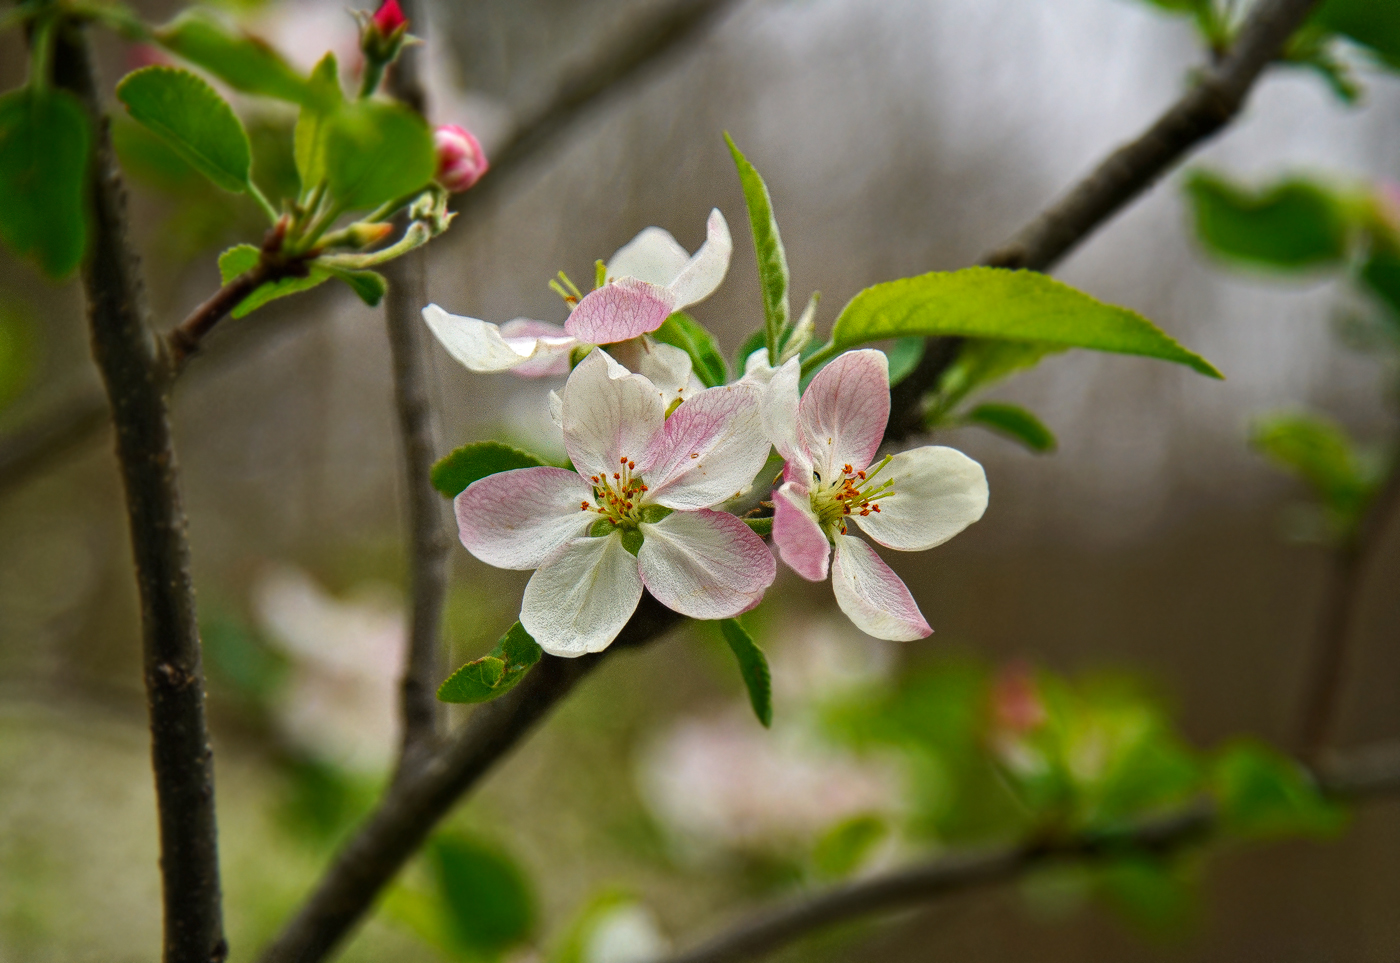 apple pink and white dsc aw author sava gregory a verena